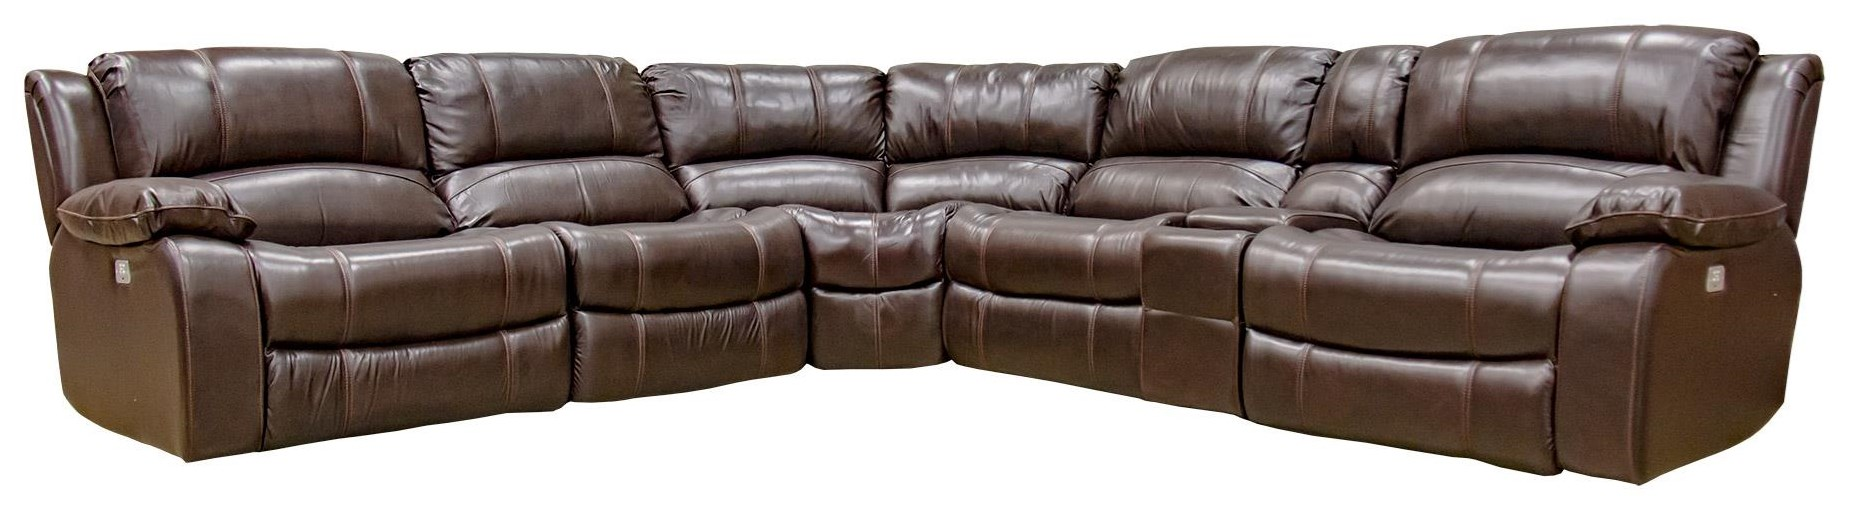 6-pc. Power Reclining Sofa with USB